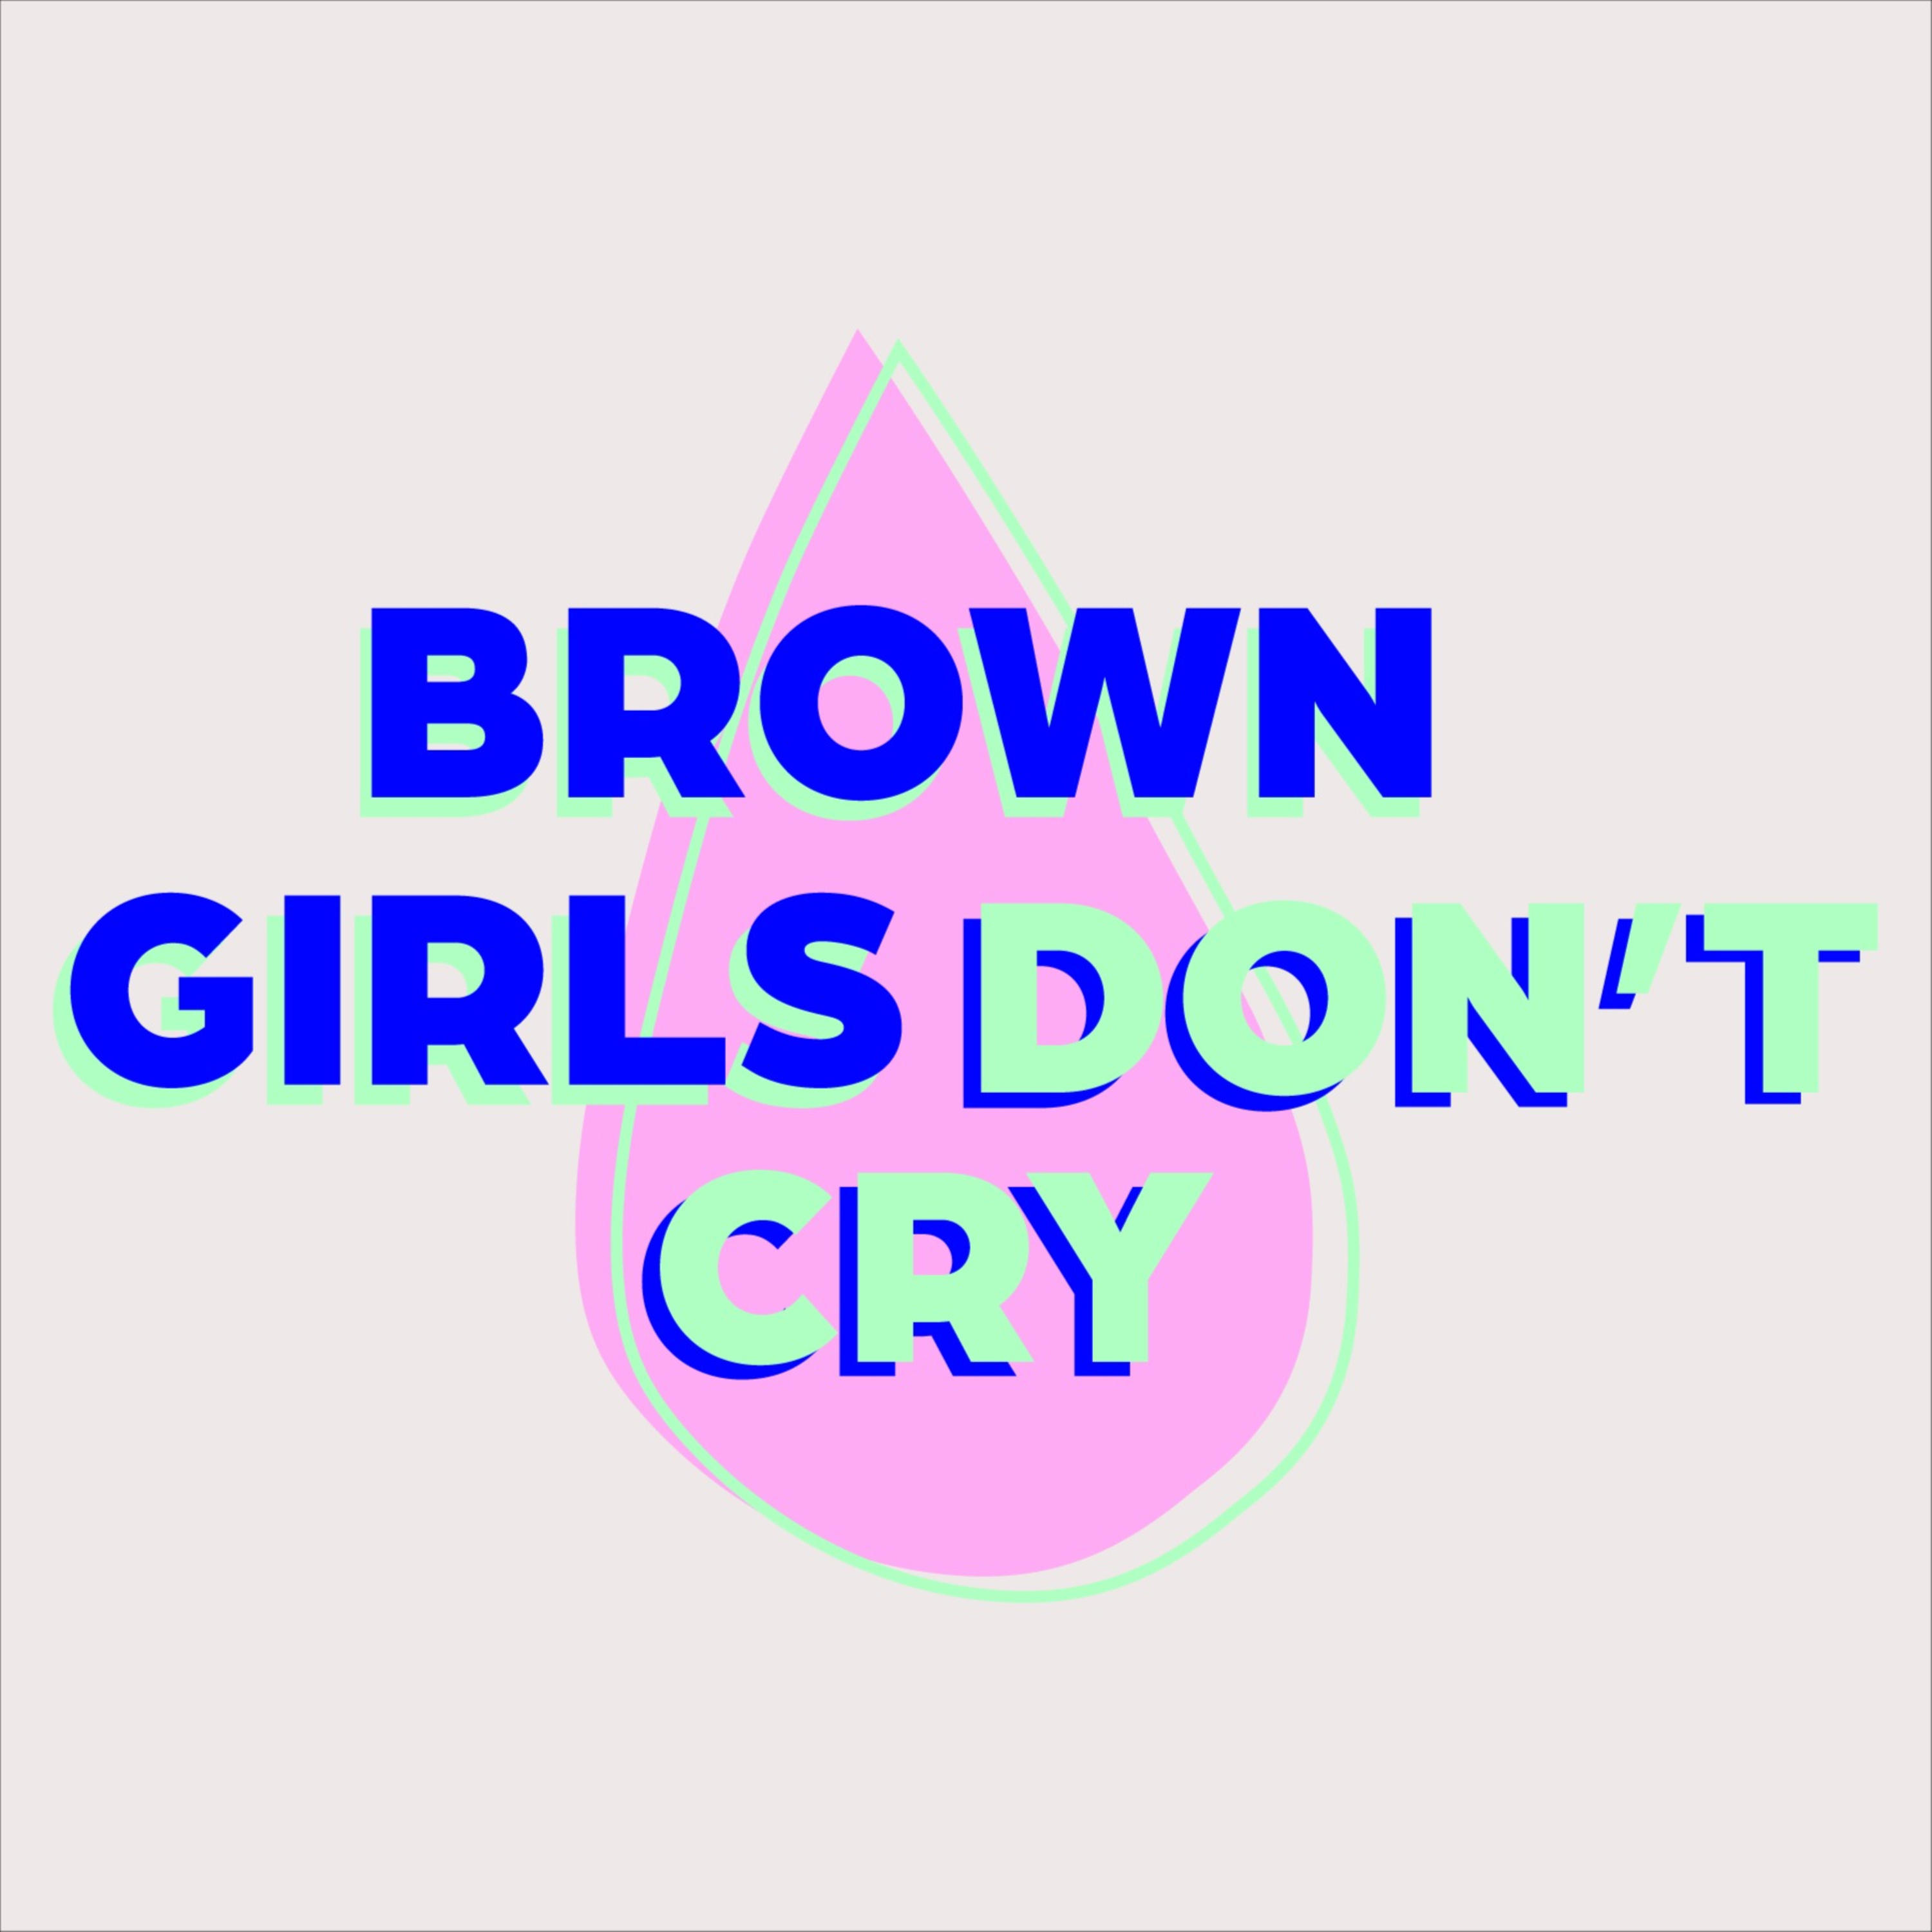 Brown Girls Don't Cry